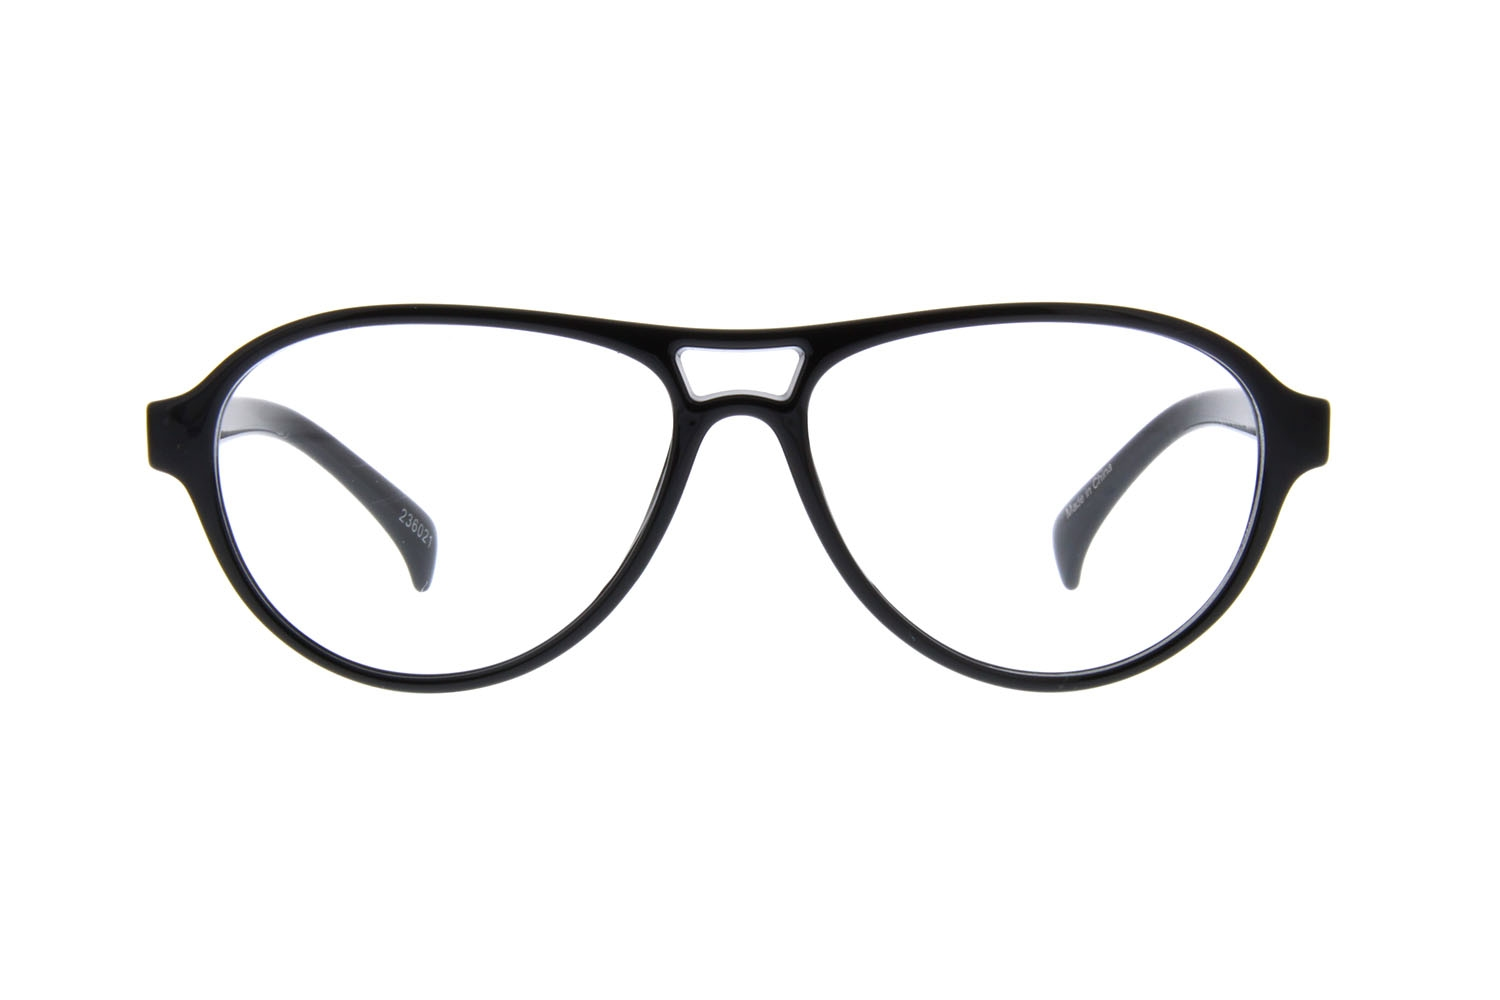 849ca1e5b4  6.95 Low Price Eyeglasses